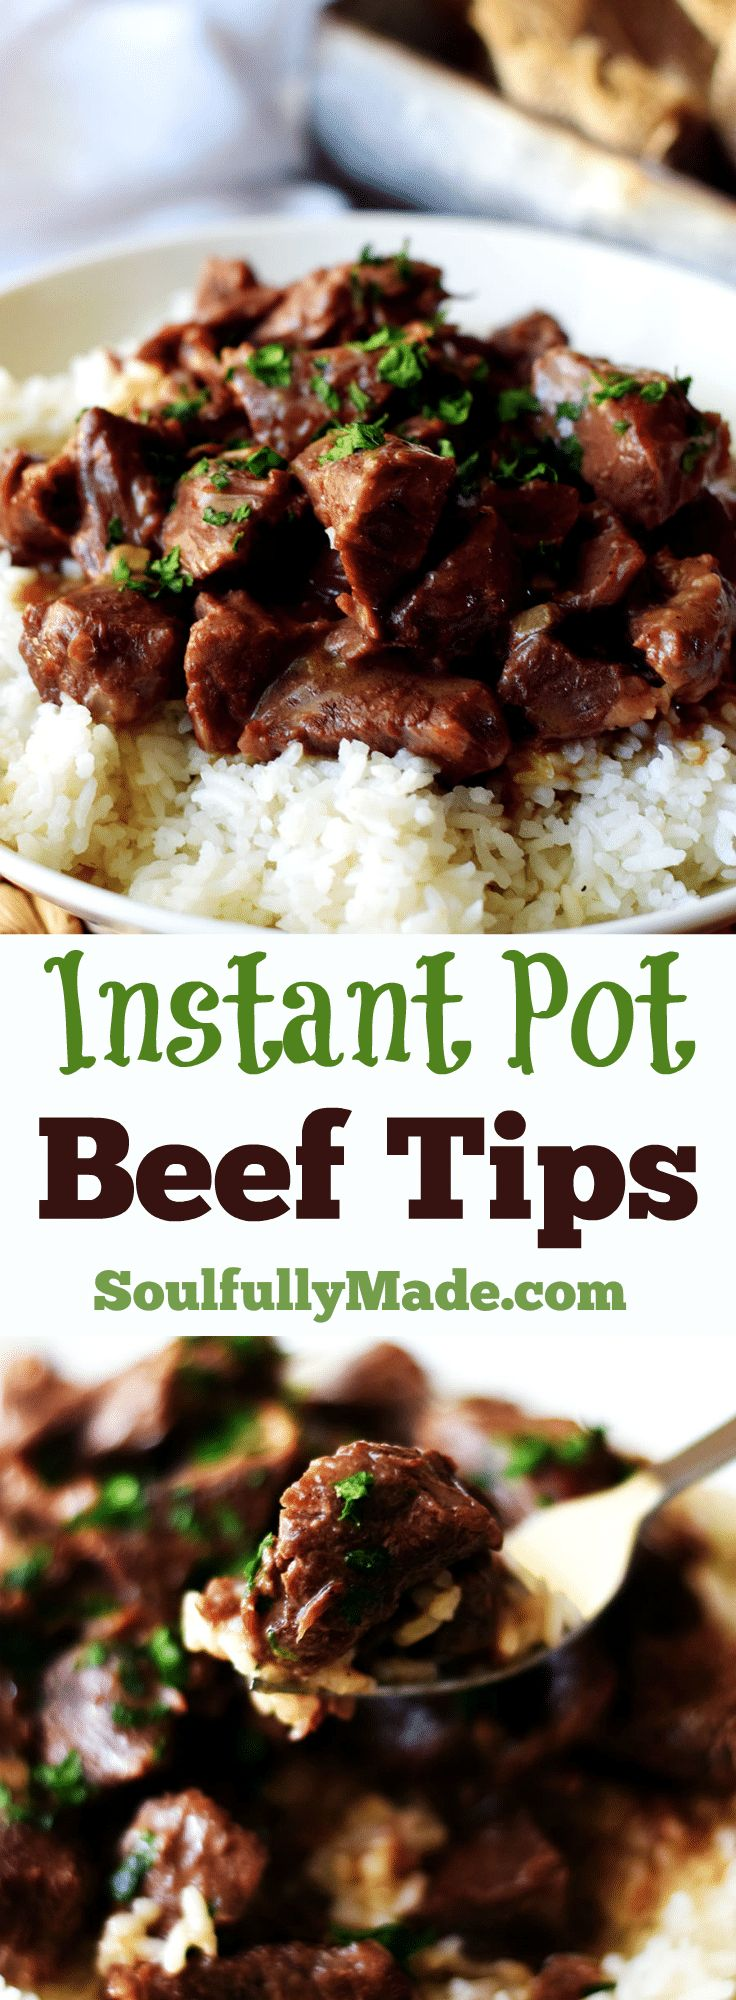 Instant Pot Beef Tips are pressure cooked in a rich delicious gravy to create melt in your mouth beef.  It is filling and full of hearty flavor ya'll! Southern food at it's finest.  *Soulfully Made is a participant in the Amazon Services LLC Associates Program, an affiliate advertising program. Please note: This post may contain...Read More